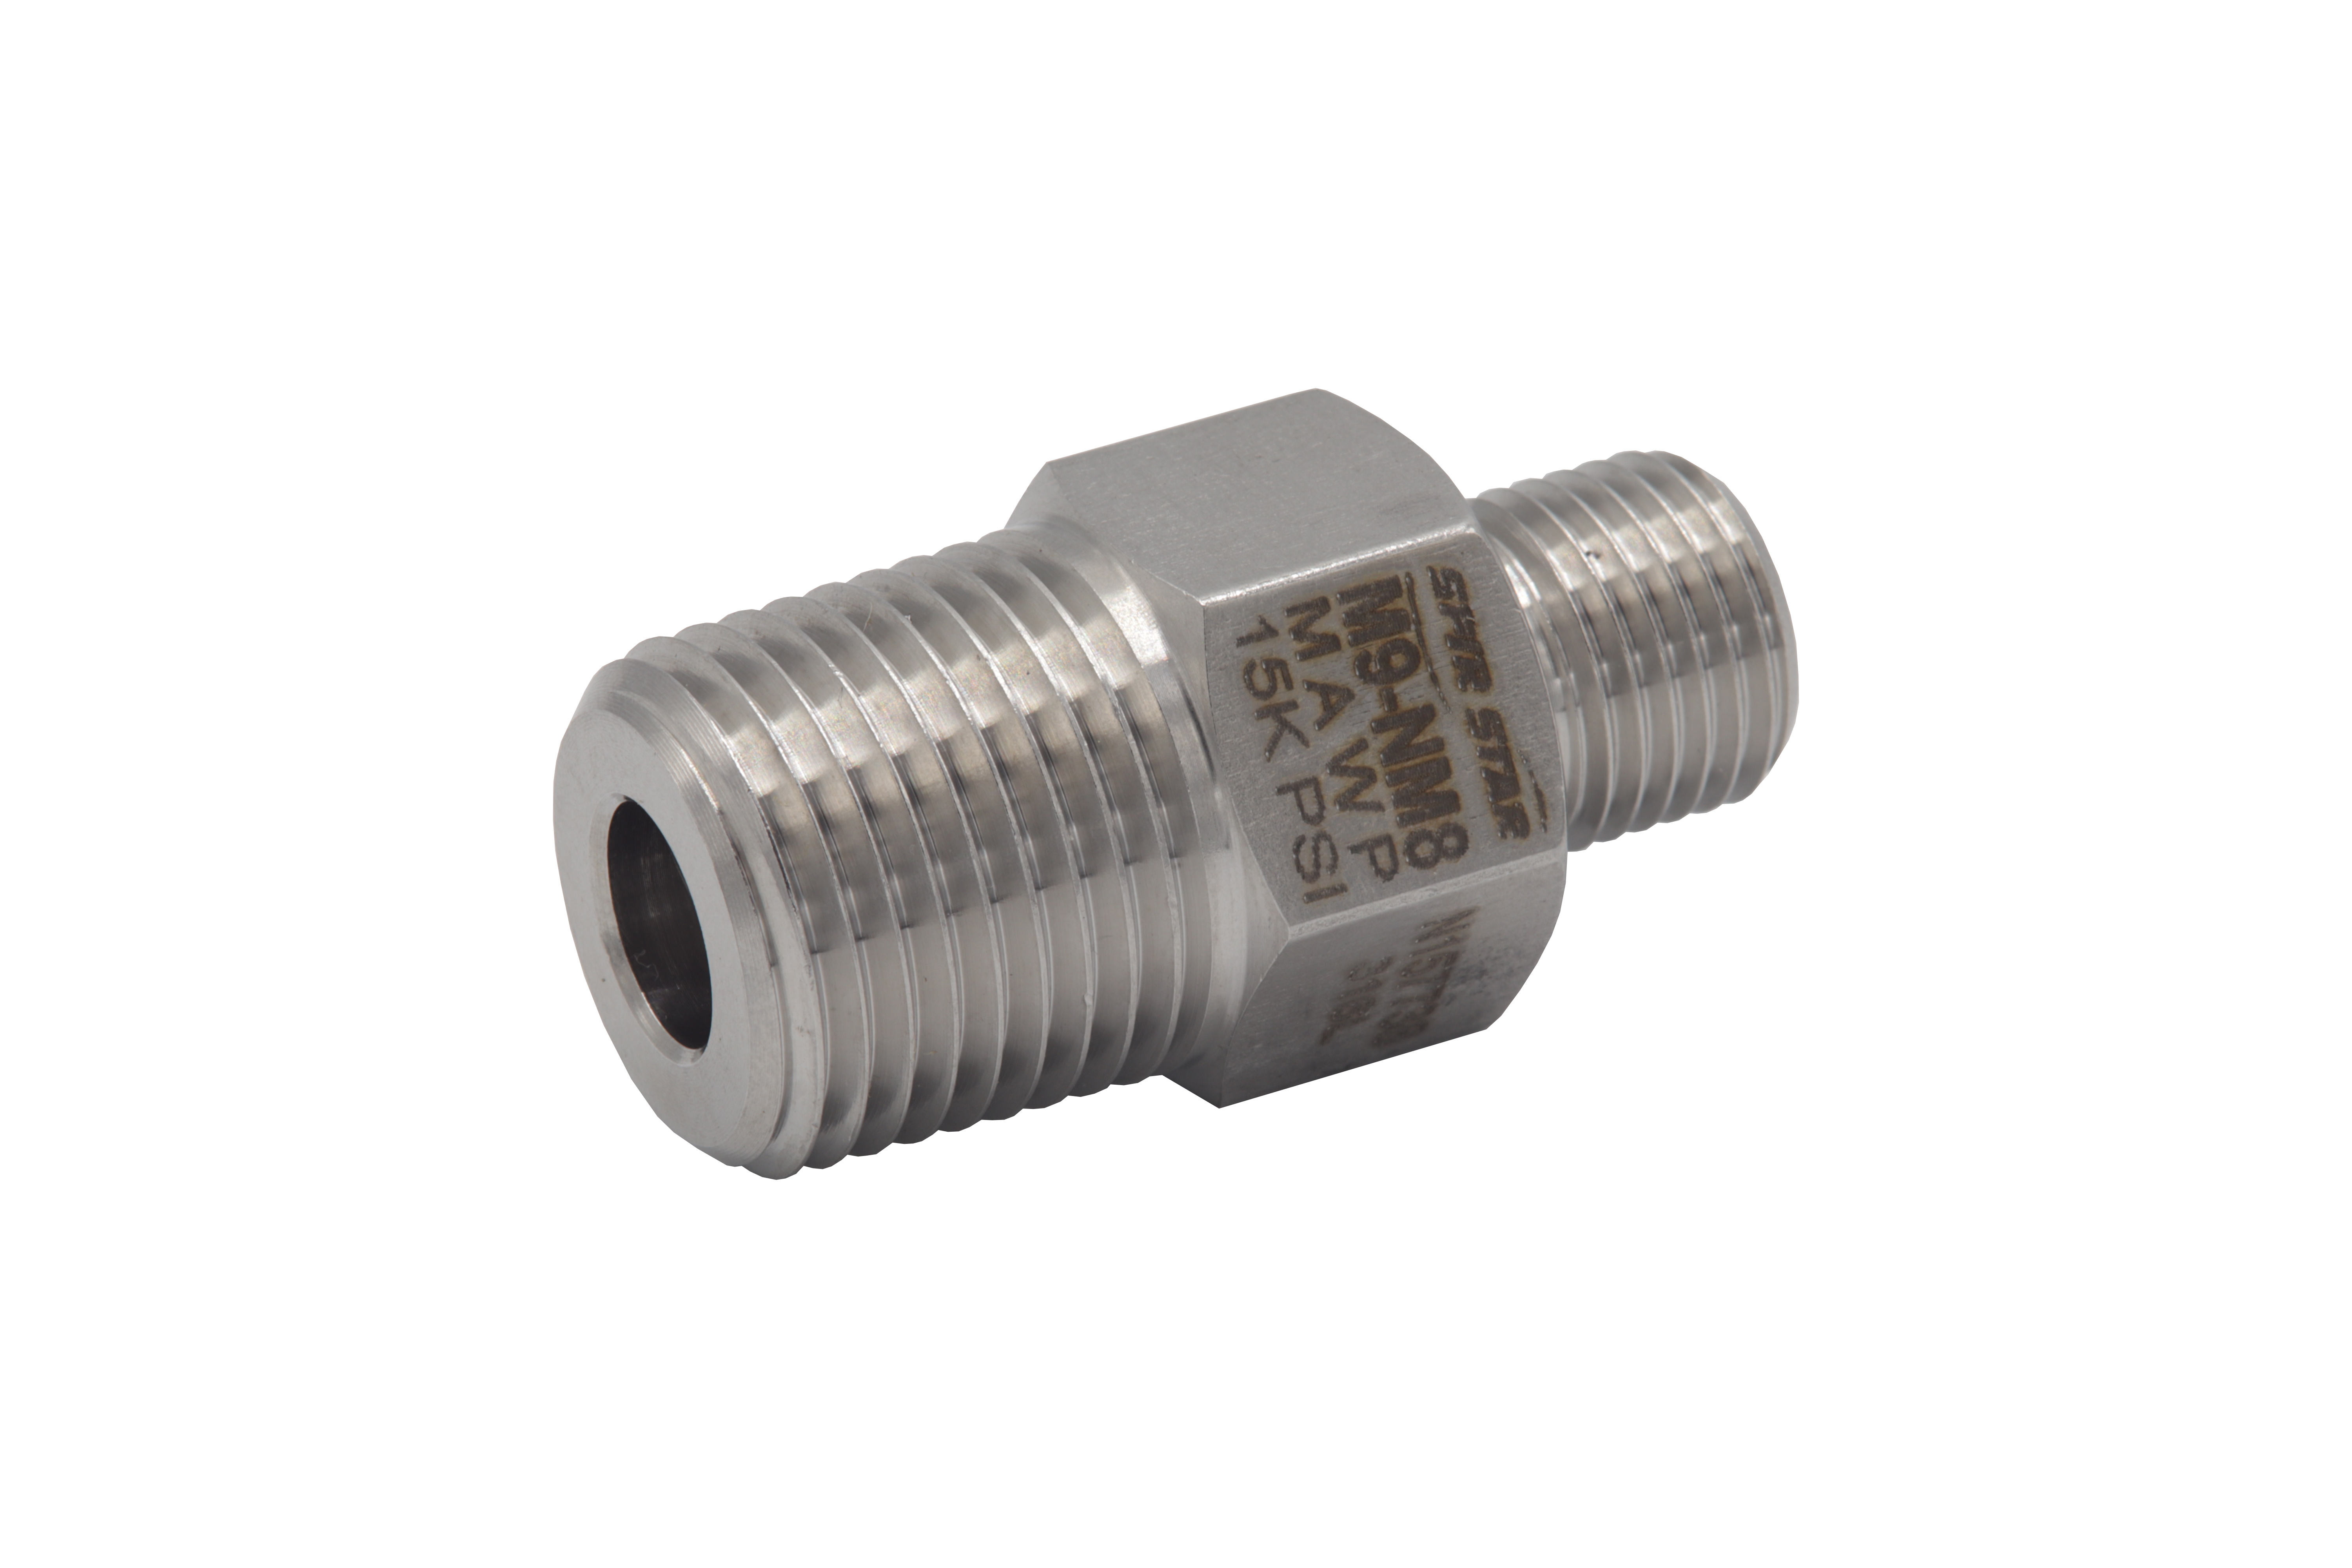 Adapters & Fittings - Adapters & Fittings